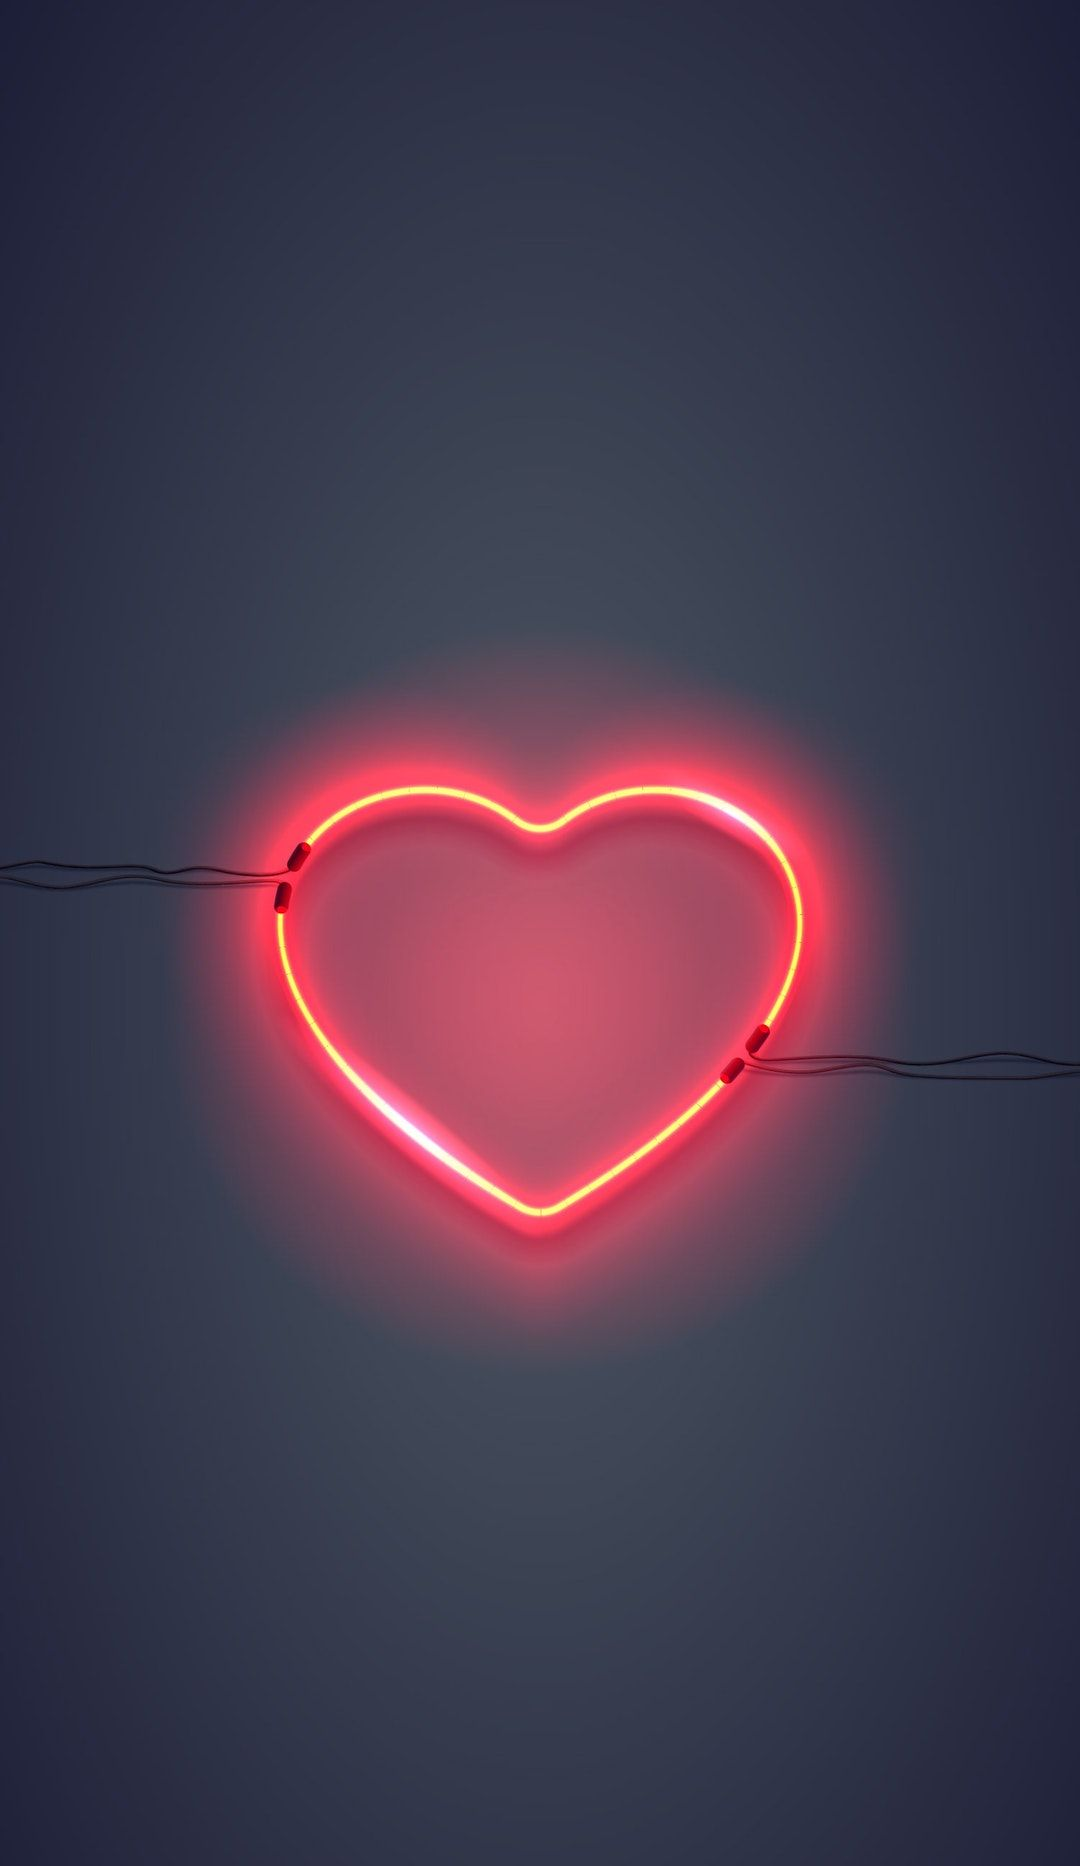 Download This Free Hd Photo Of Heart Light Neon And Red By